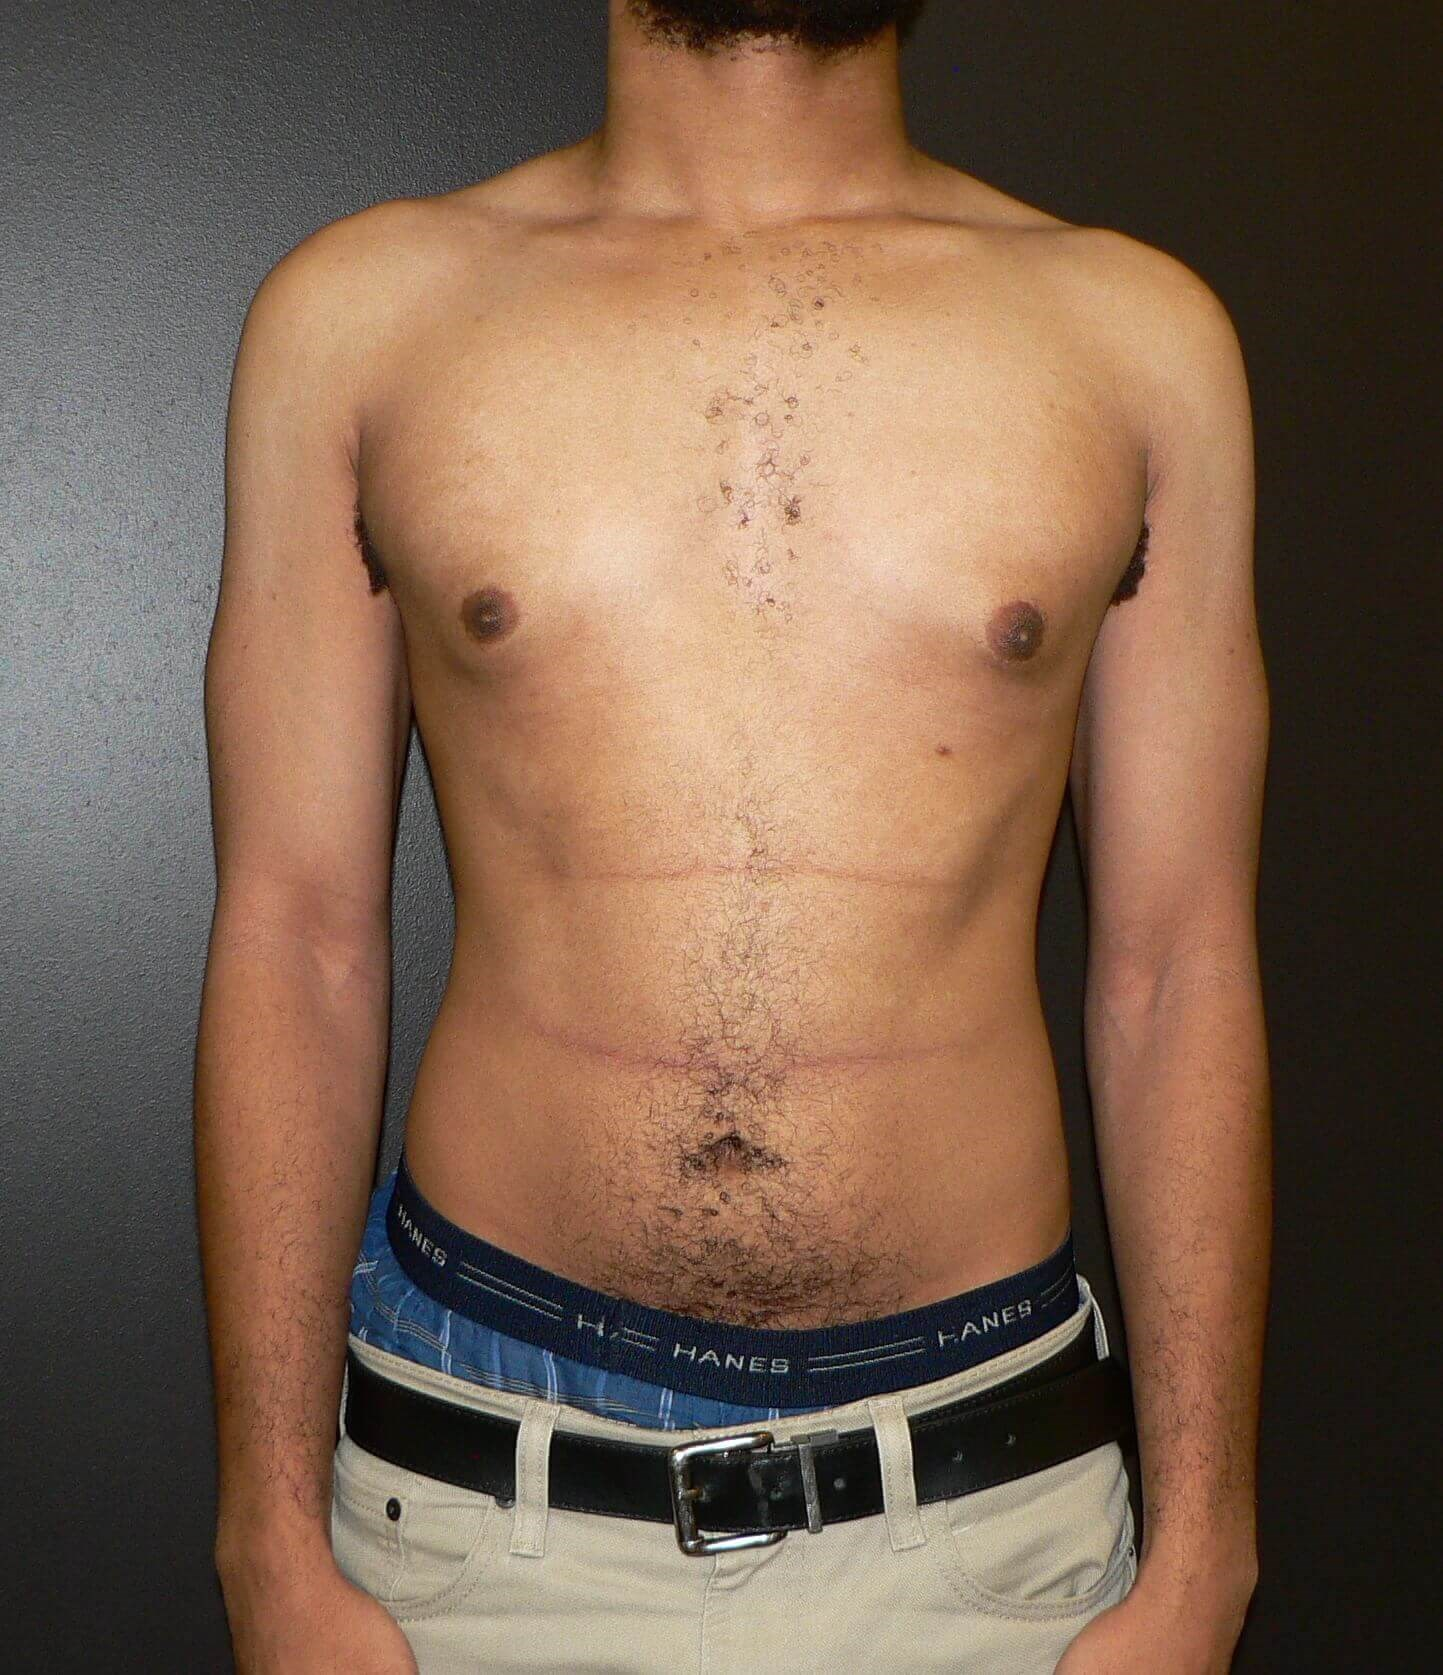 Gynecomastia surgery Denver Before